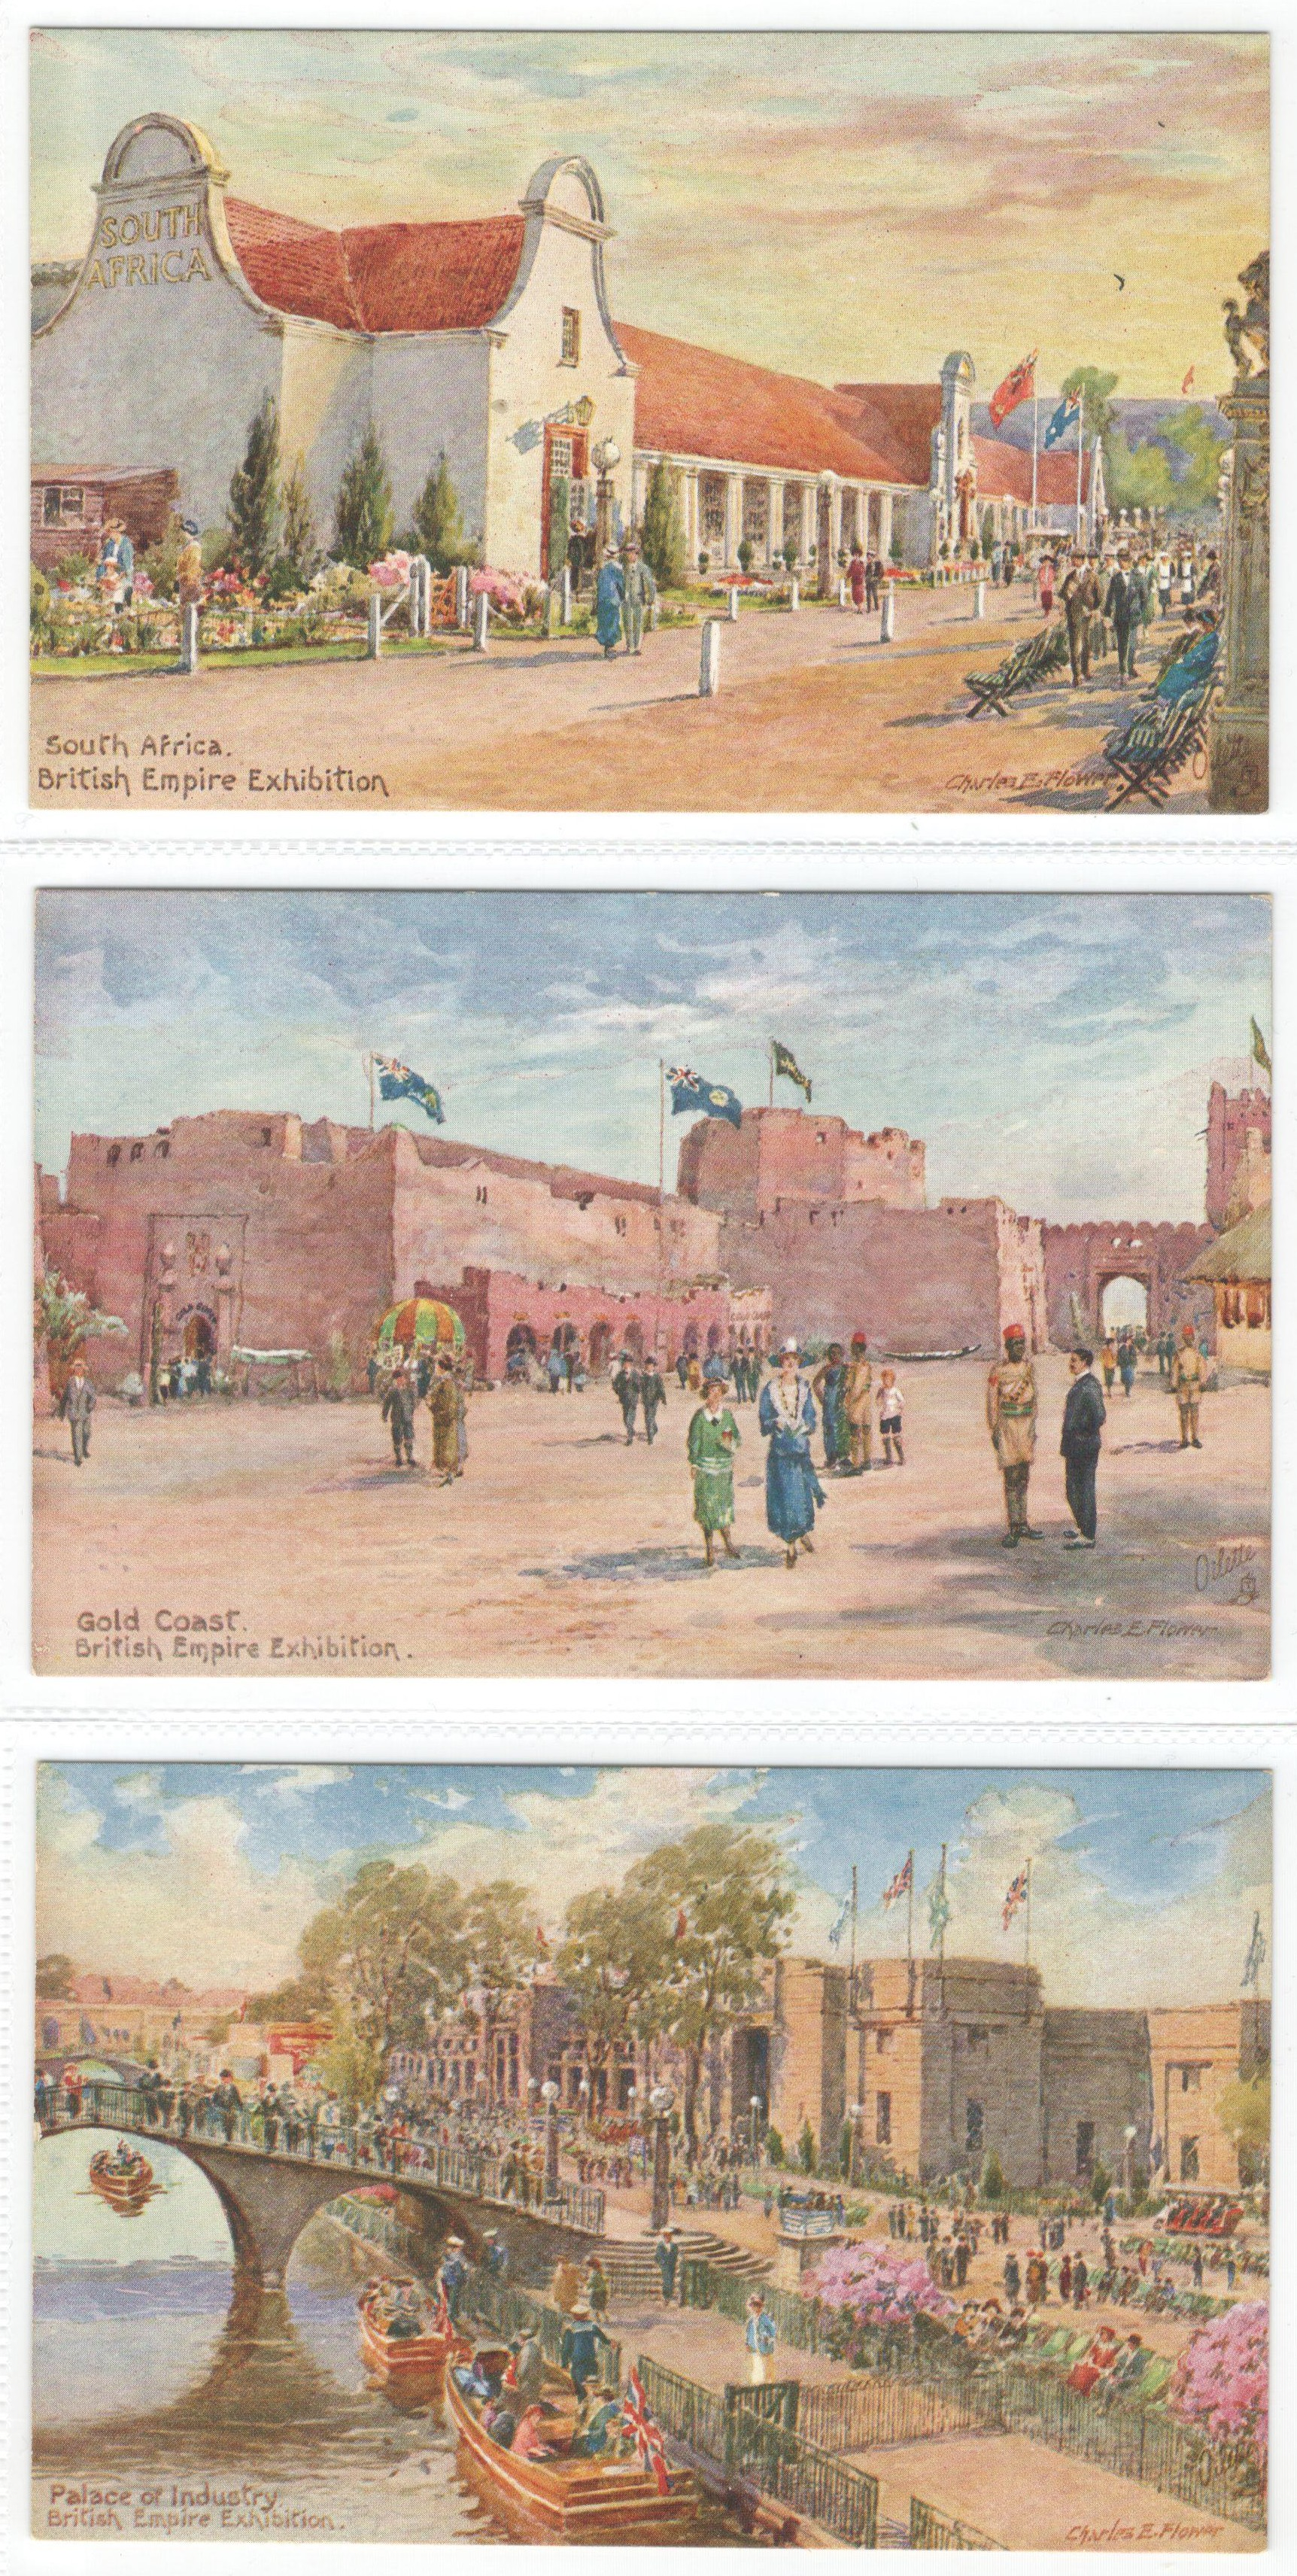 SET OF SIX RAPHAEL TUCK POSTCARDS - THE BRITISH EMPIRE EXHIBITION SERIES II - 3513 - Image 2 of 3